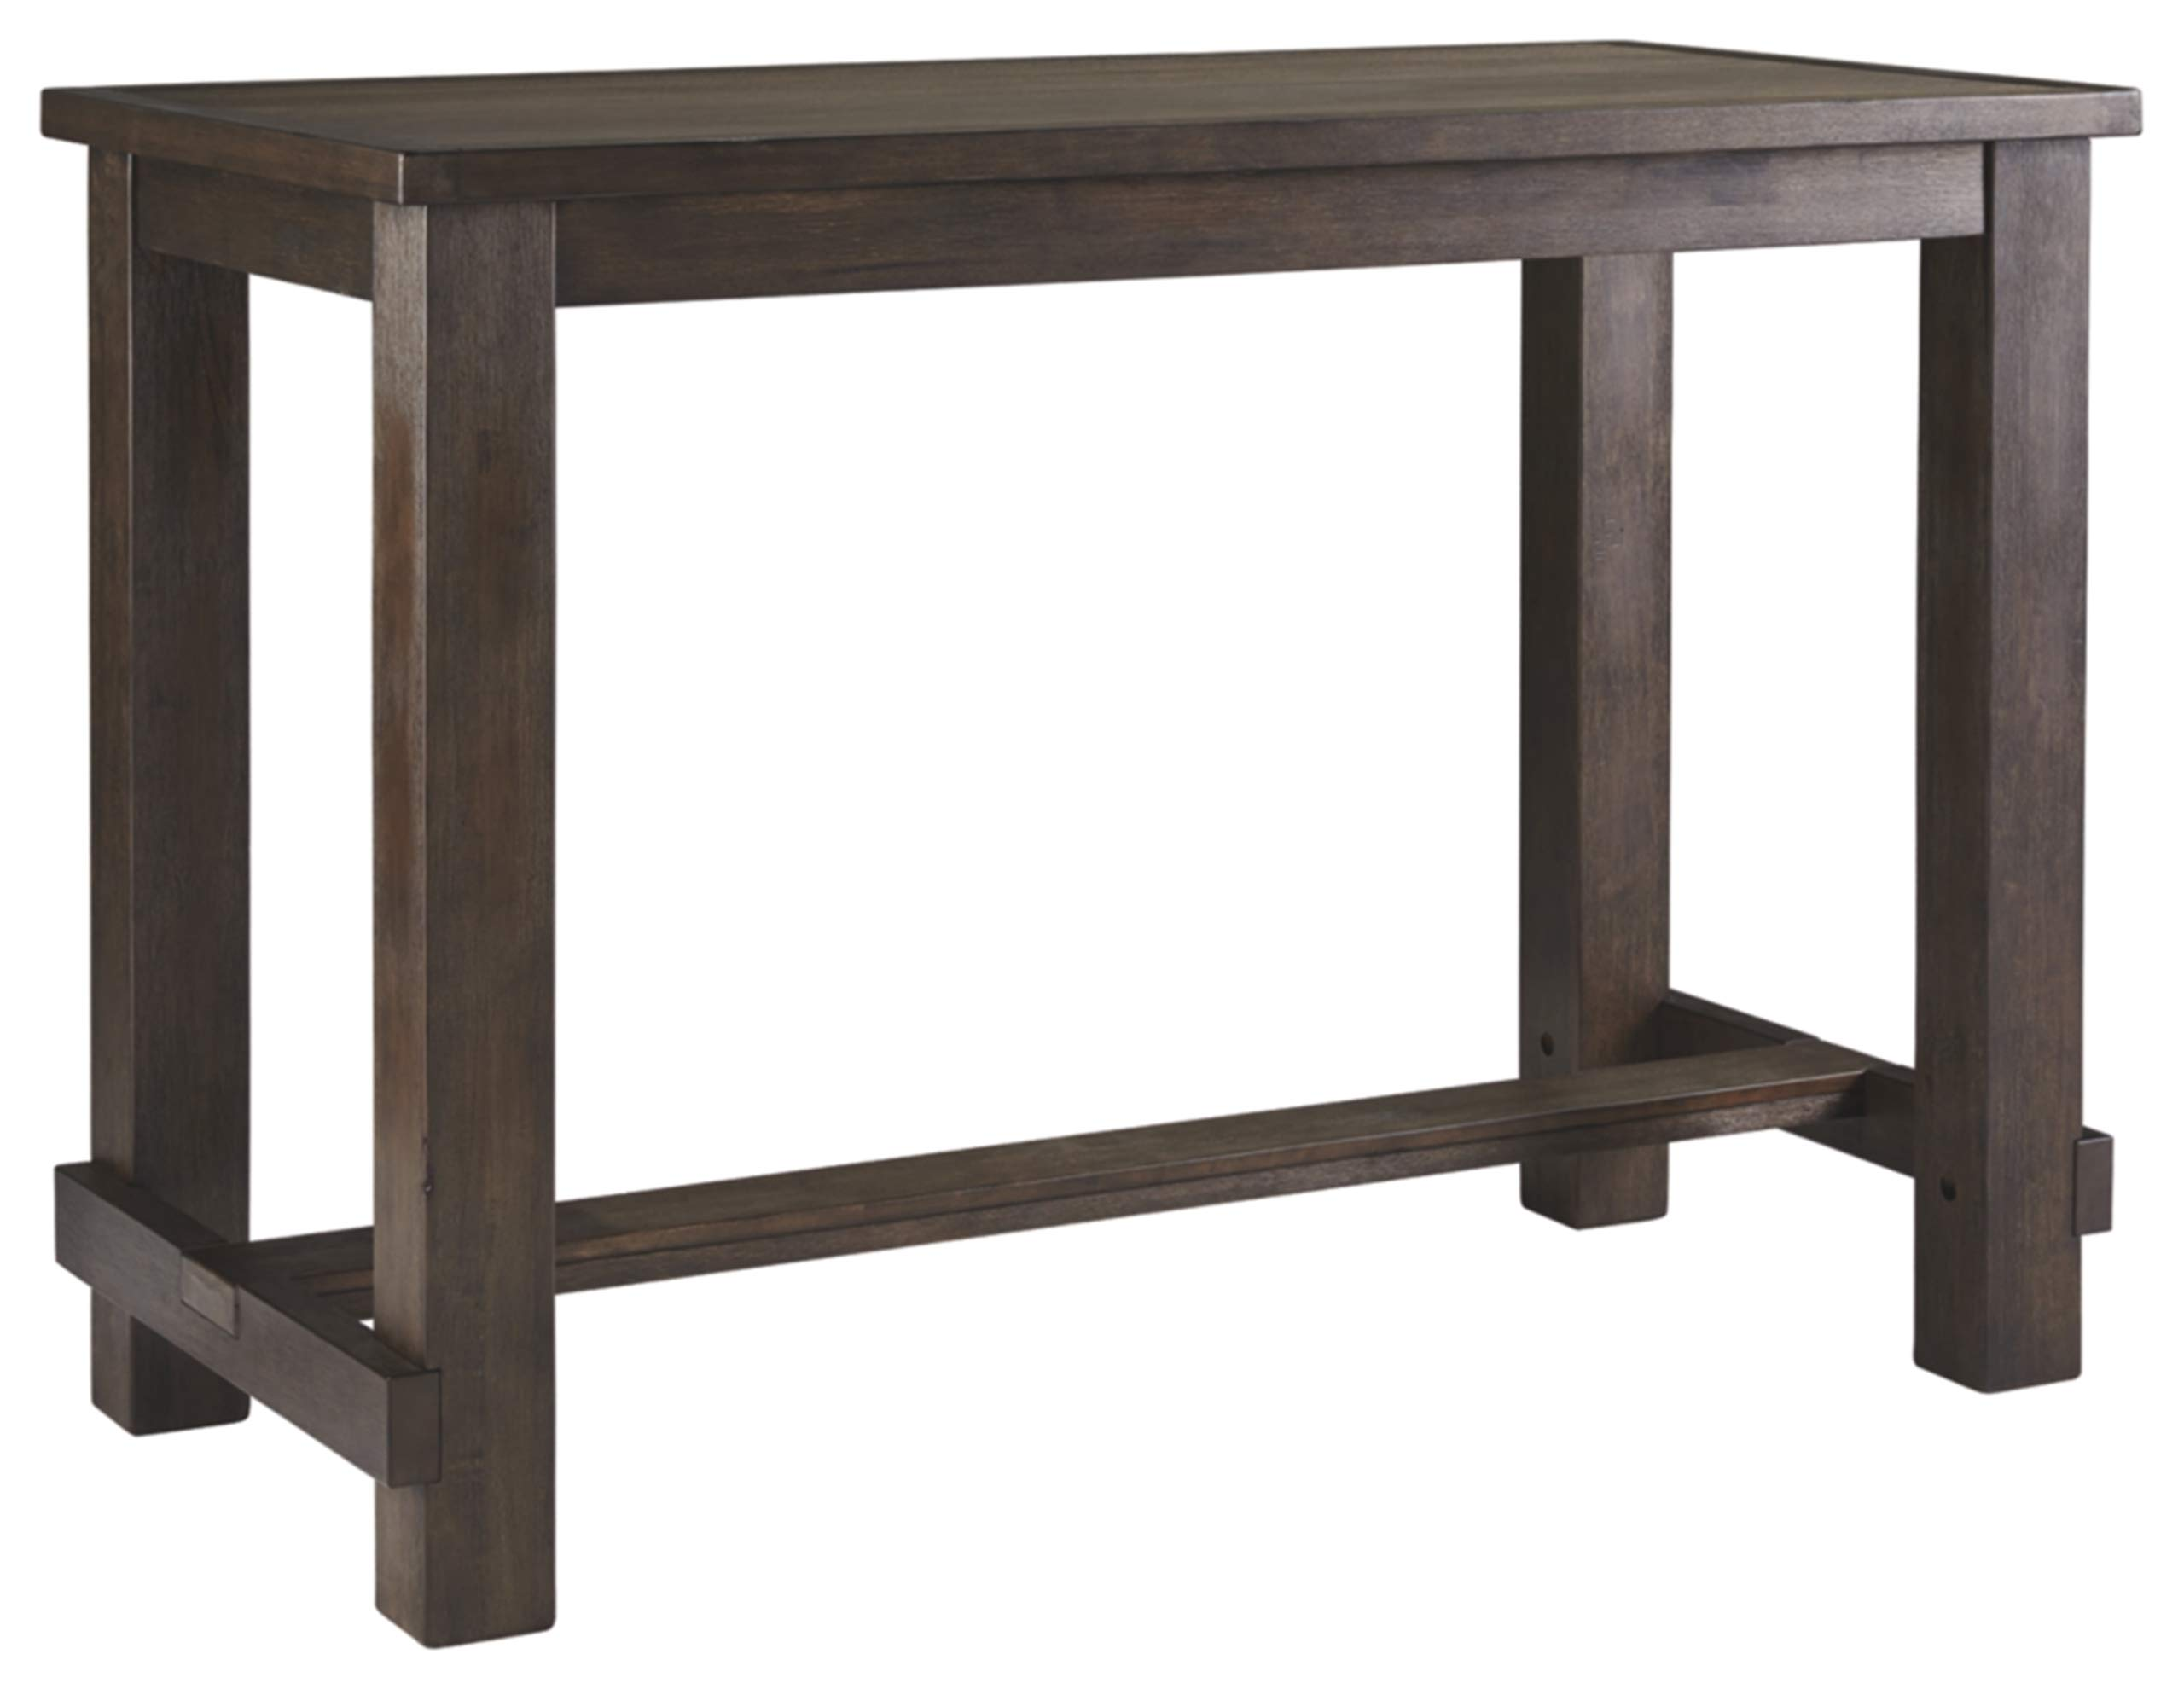 Signature Design by Ashley D538-12 Drewing Bar Table, Brown by Signature Design by Ashley